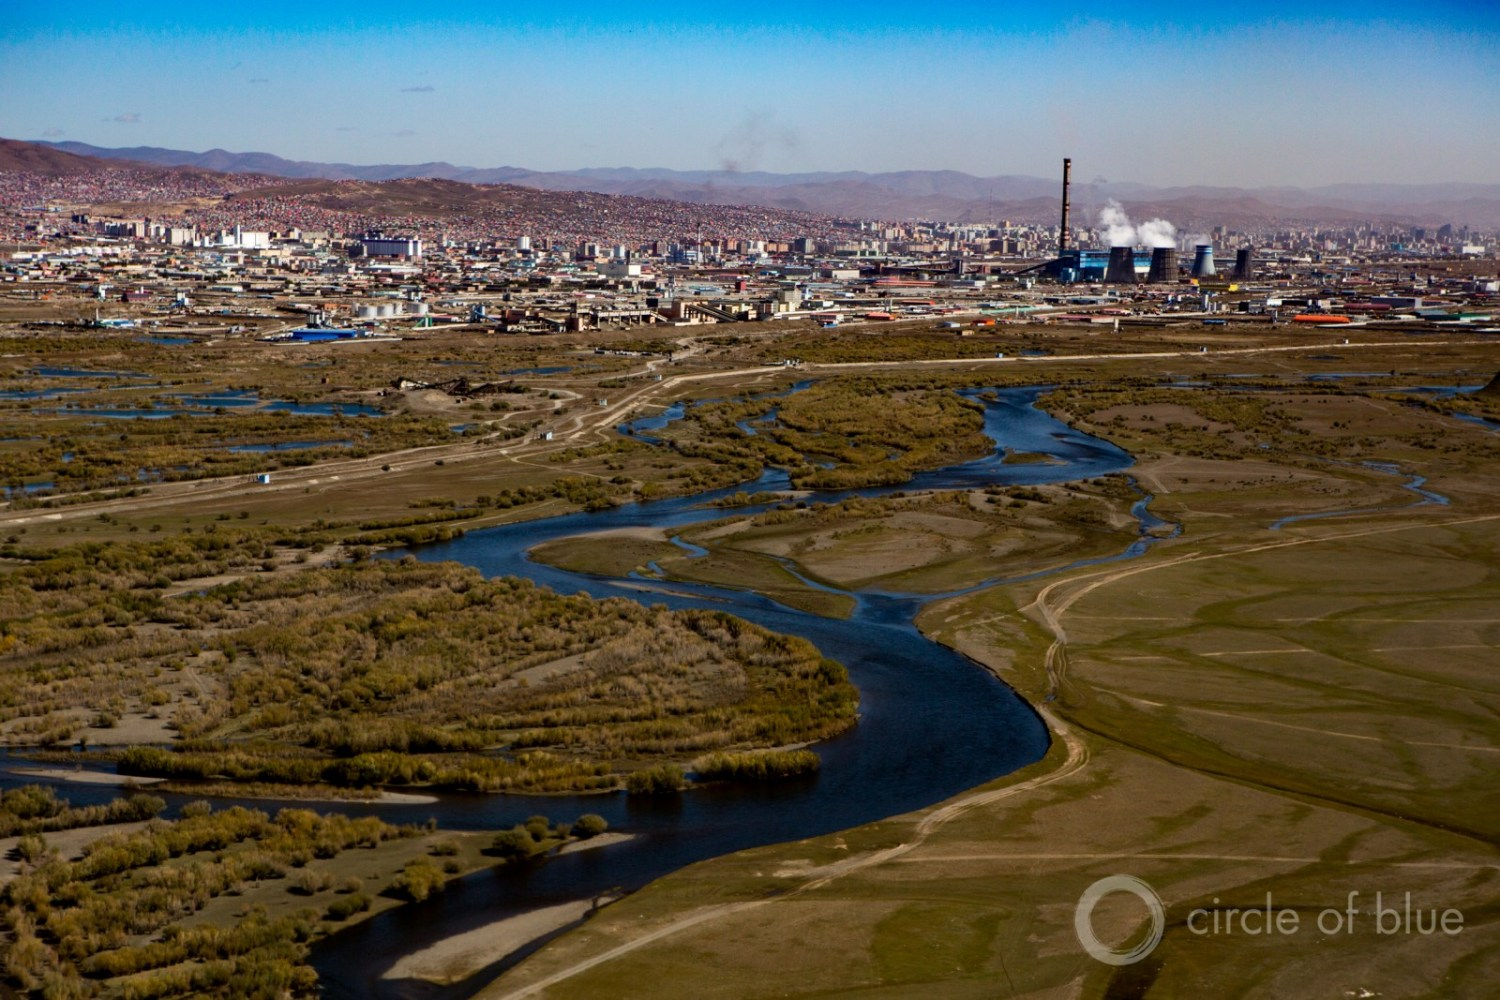 """Coal-fired power in Ulan Bator, Mongolia. Much of the analysis on financial losses focuses on the plunge in oil and coal prices, and the potential that a huge portion of the global reserves of oil, gas, and coal will be """"stranded' in the ground to curb climate change. Photo © J. Carl Ganter / Circle of Blue"""